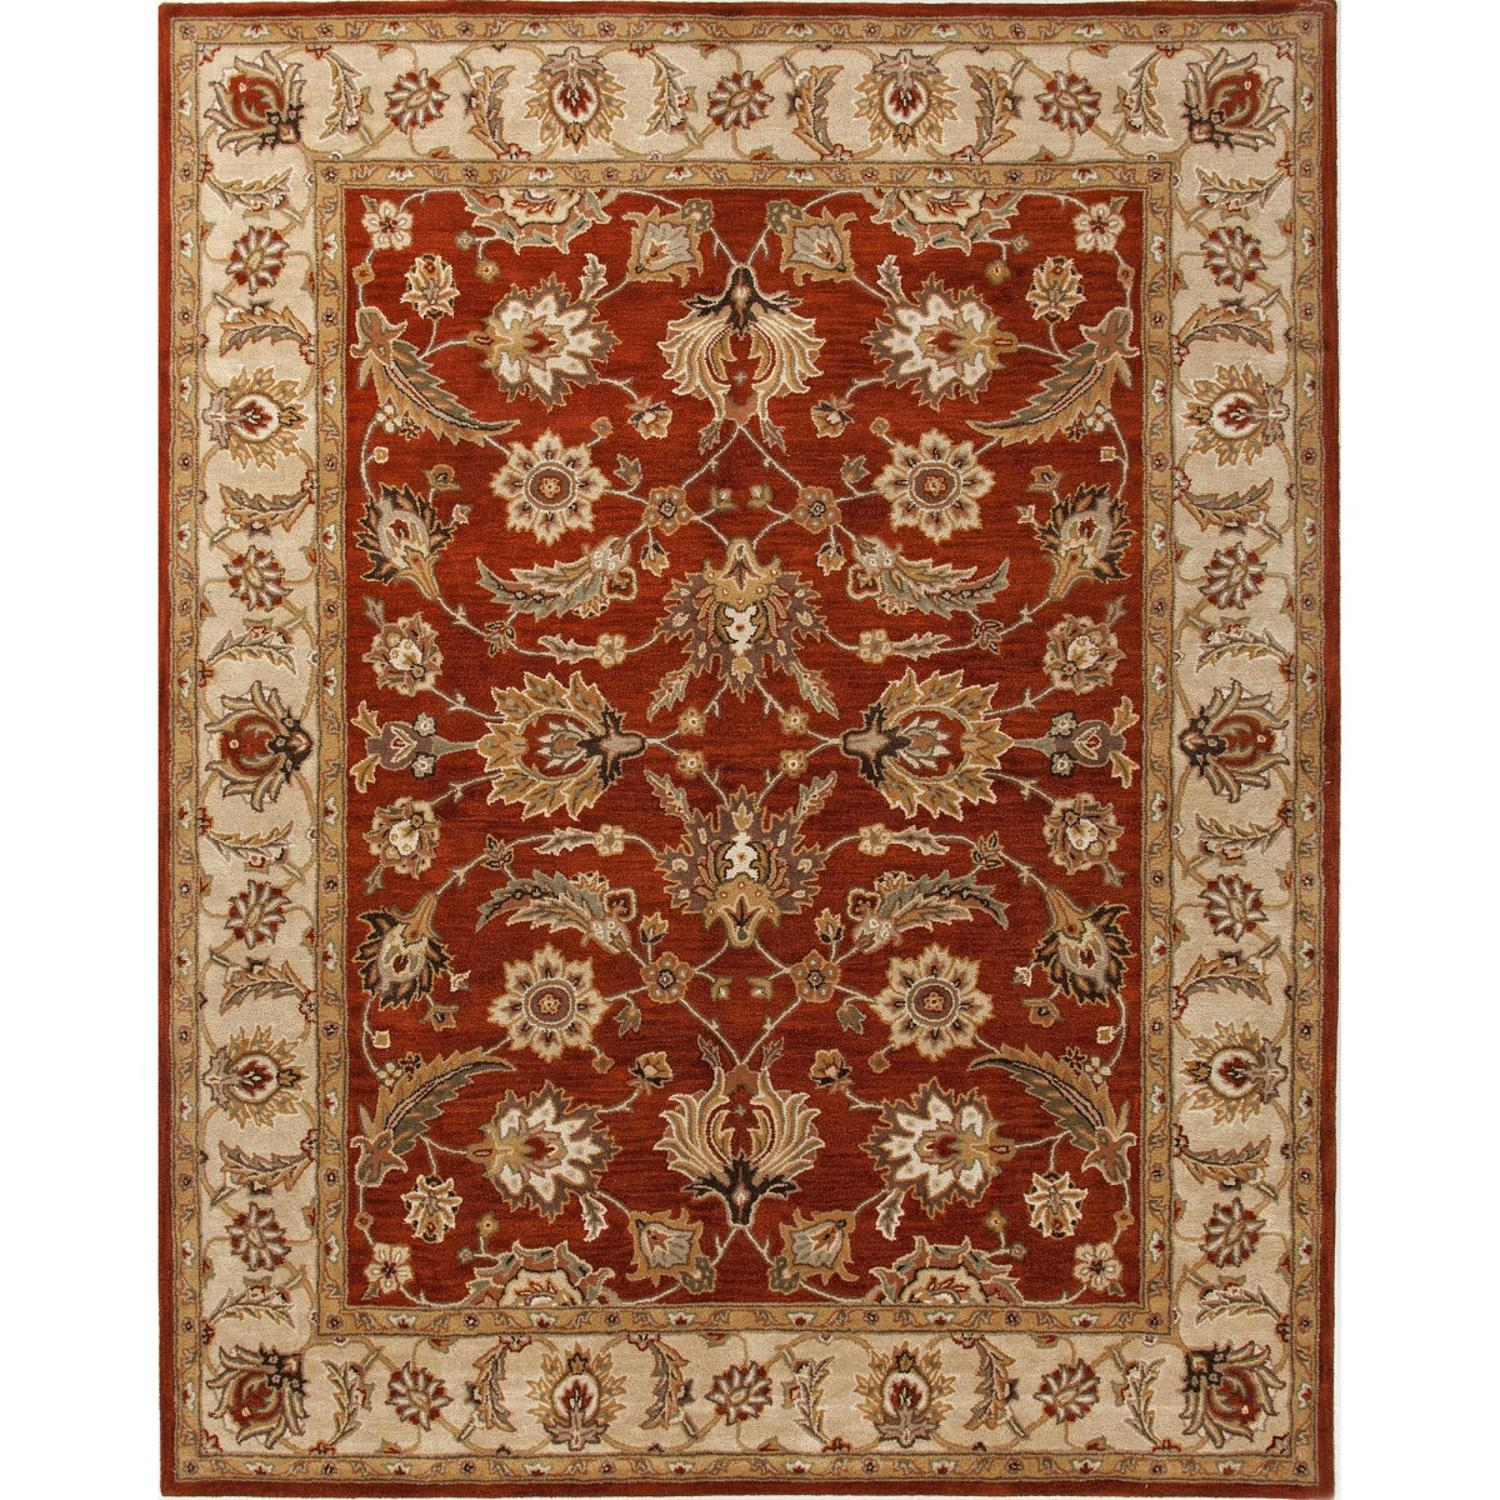 2' x 3' Cantolope Orange and Light Tan Selene Hand Tufted Wool Area Throw Rug